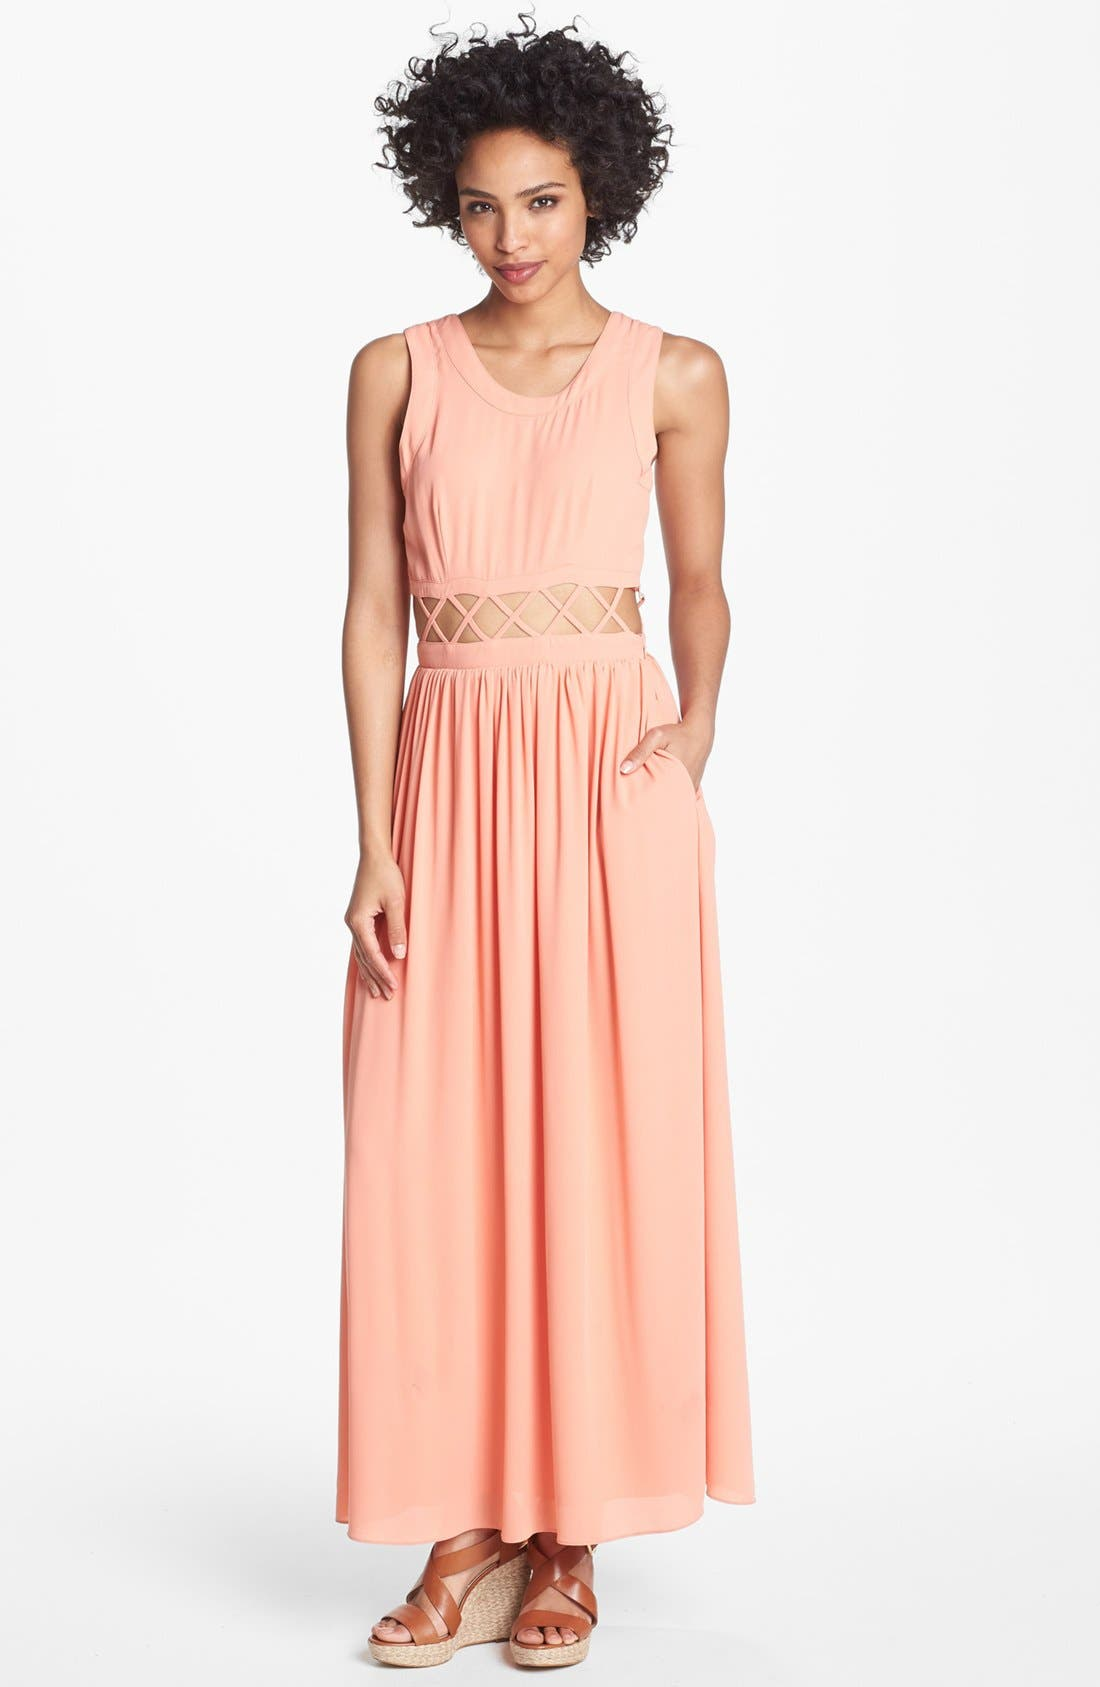 Alternate Image 1 Selected - Lovers + Friends 'Calling You' Cutout Maxi Dress